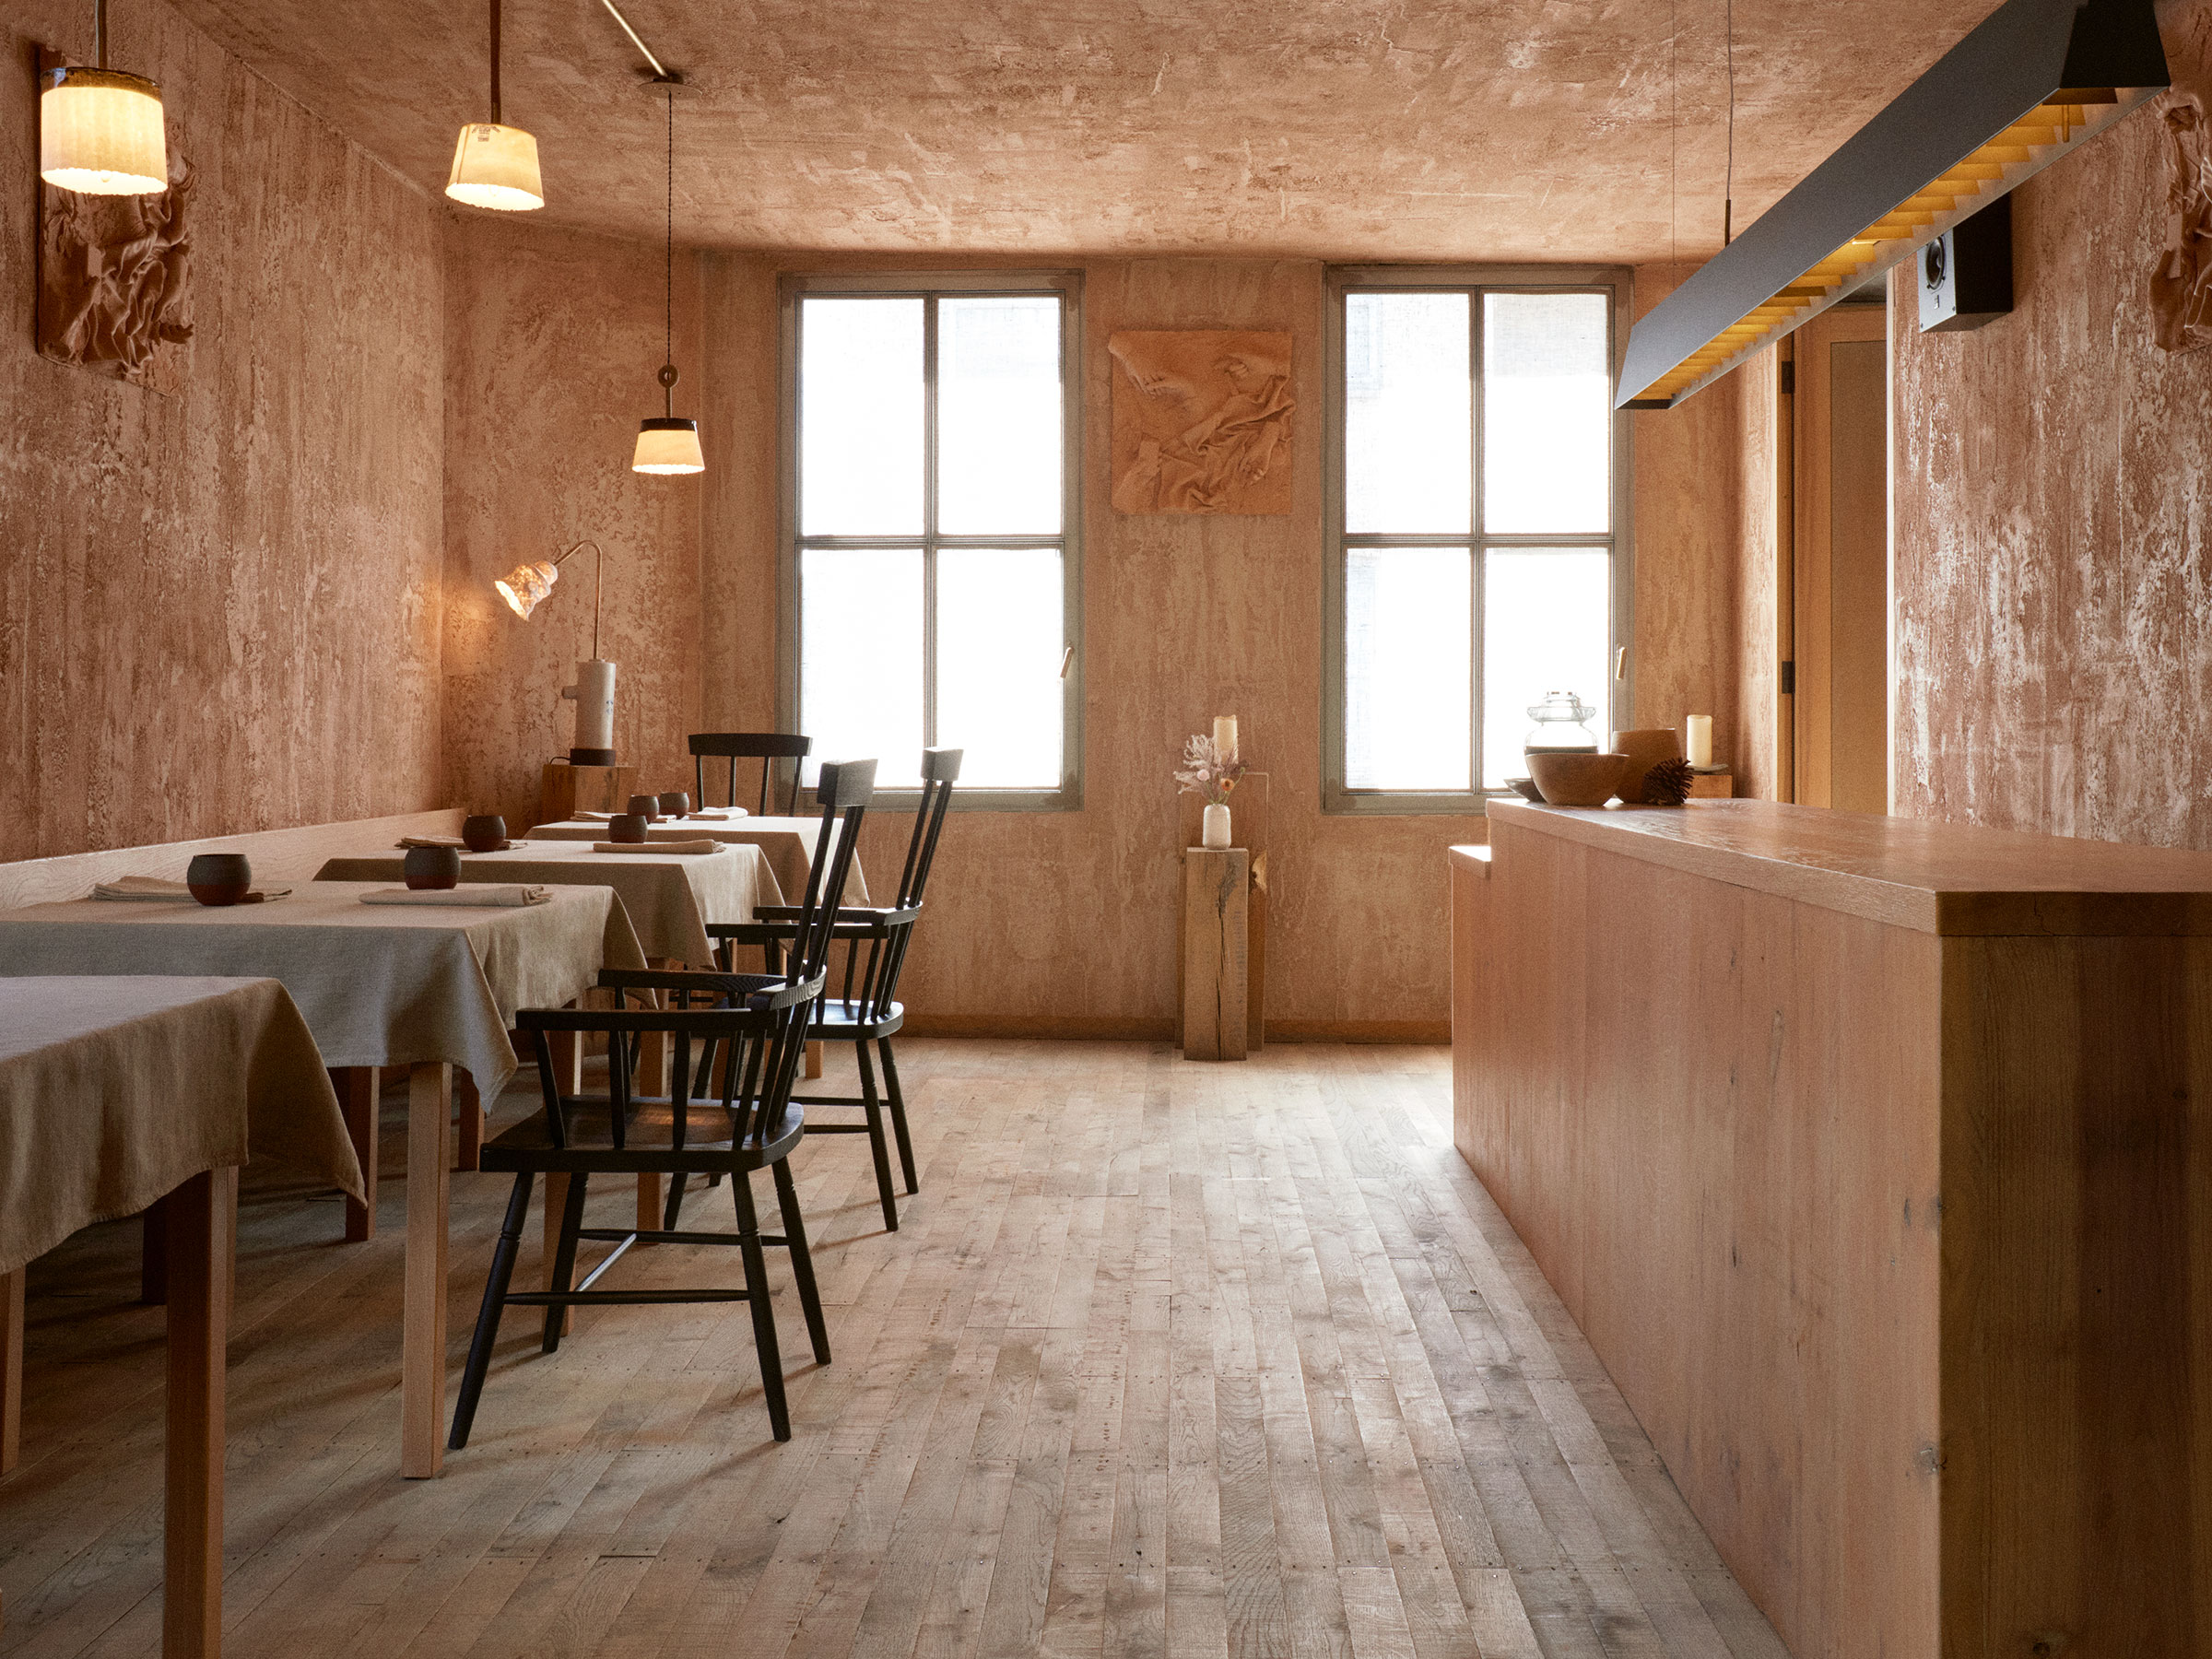 the main dining area features pinkish gypsum walls, a long wooden counter, alon 11